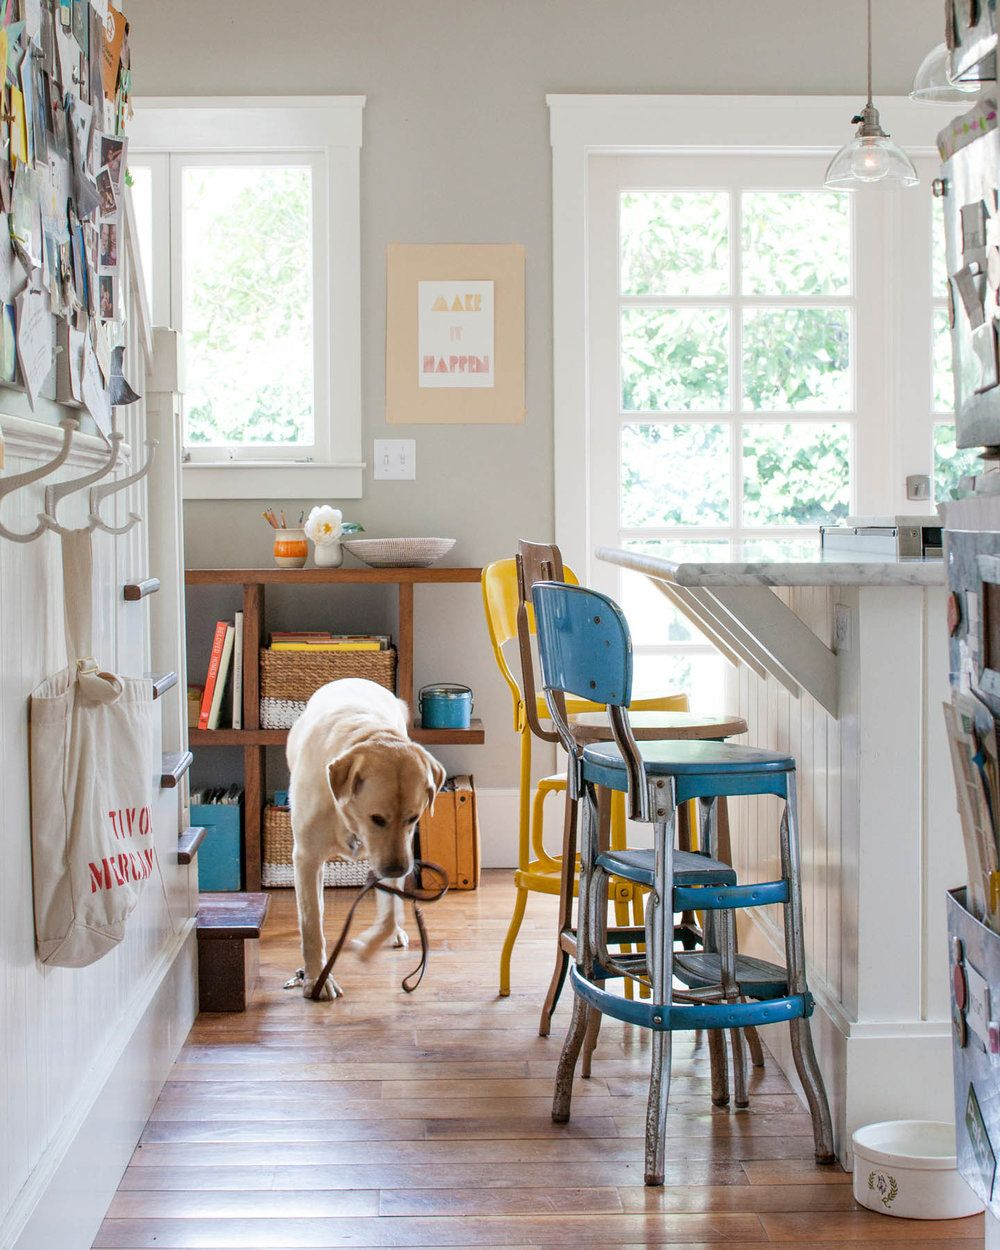 Narrow hallway colours  Hallway with multicolored bar stools and dog interior design